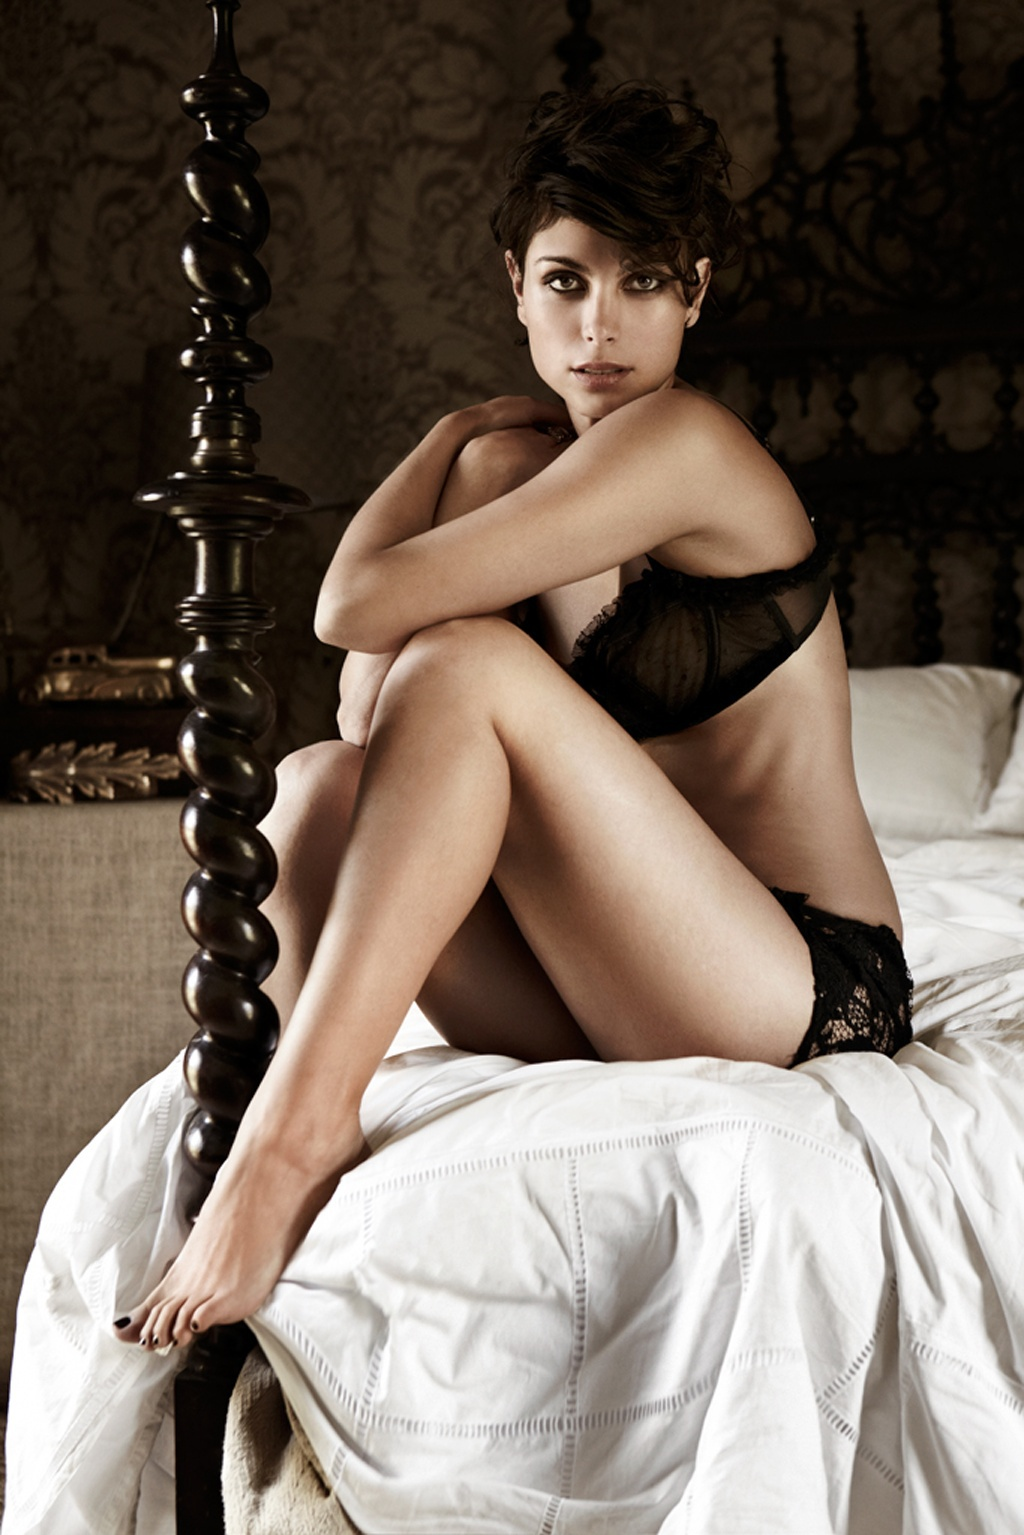 Morena Baccarin Iphone Images